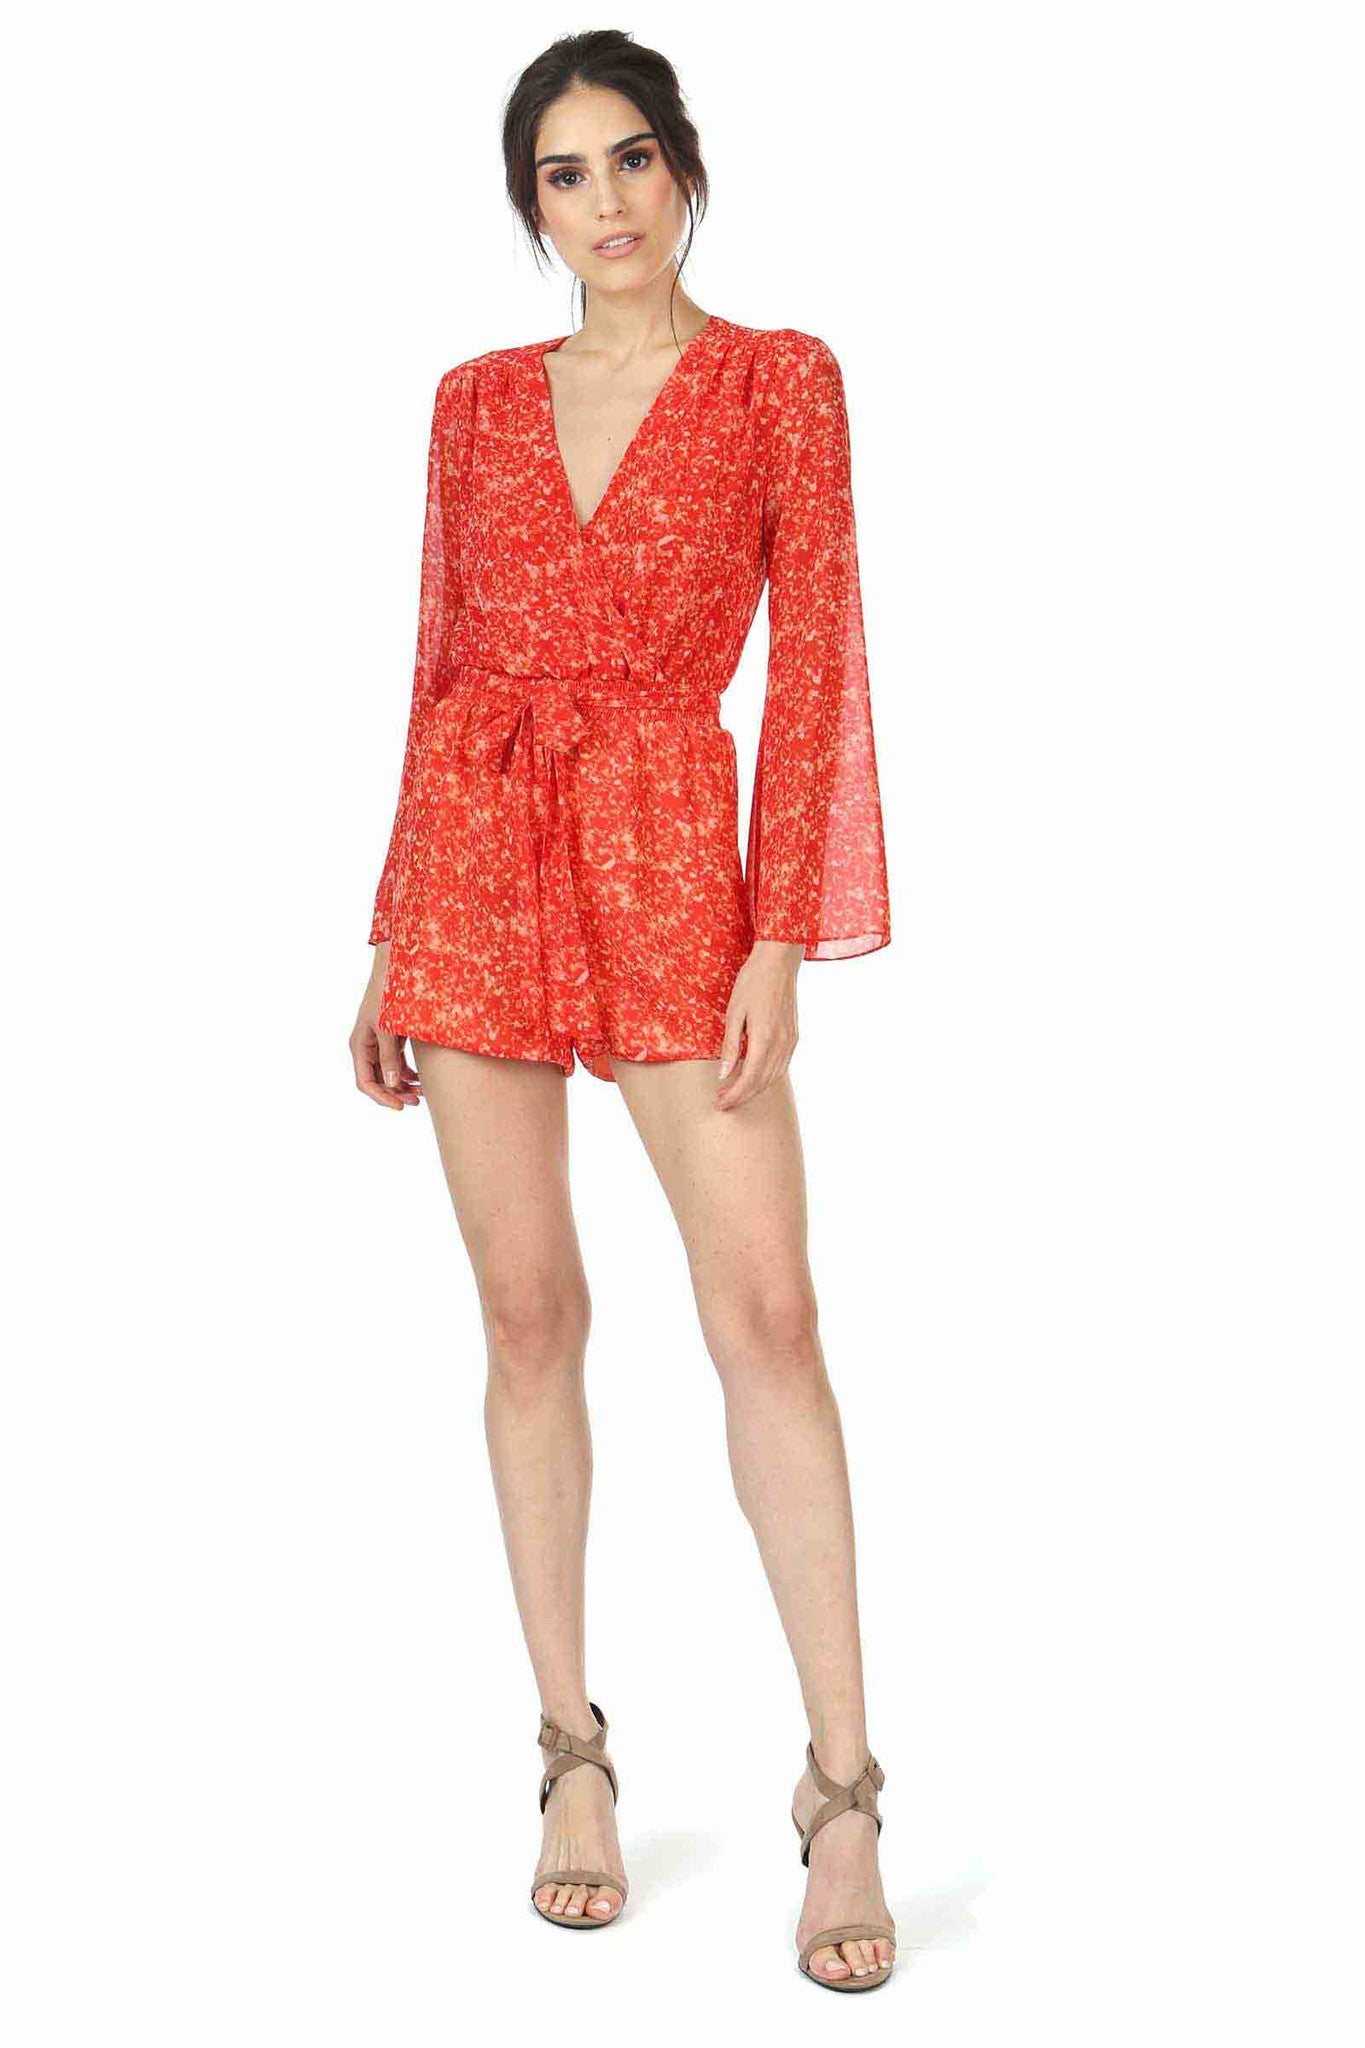 Jay Godfrey Red Printed Bell-Sleeve Romper - Front View